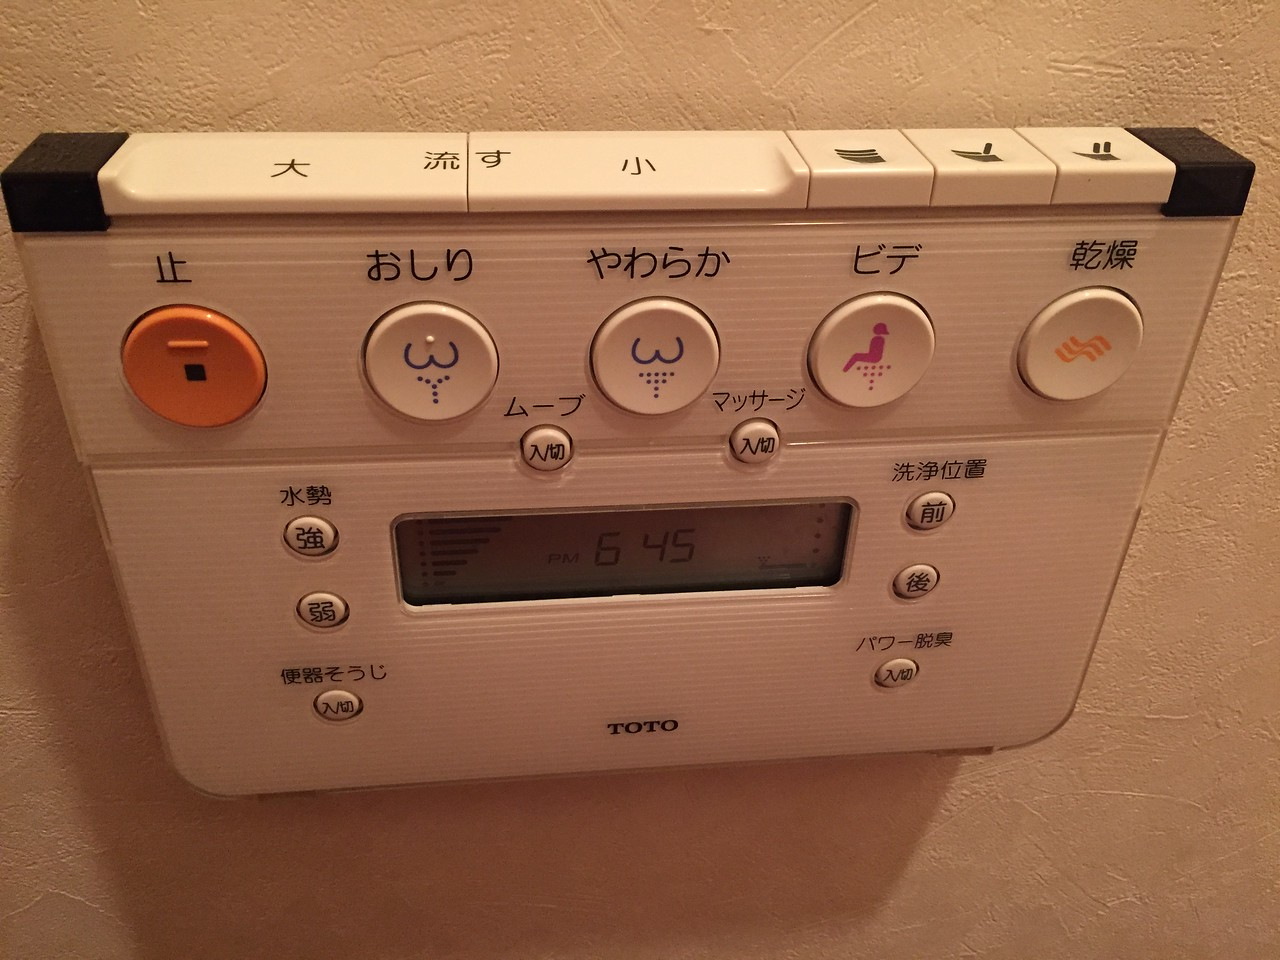 Control for the toilet in our Air BnB